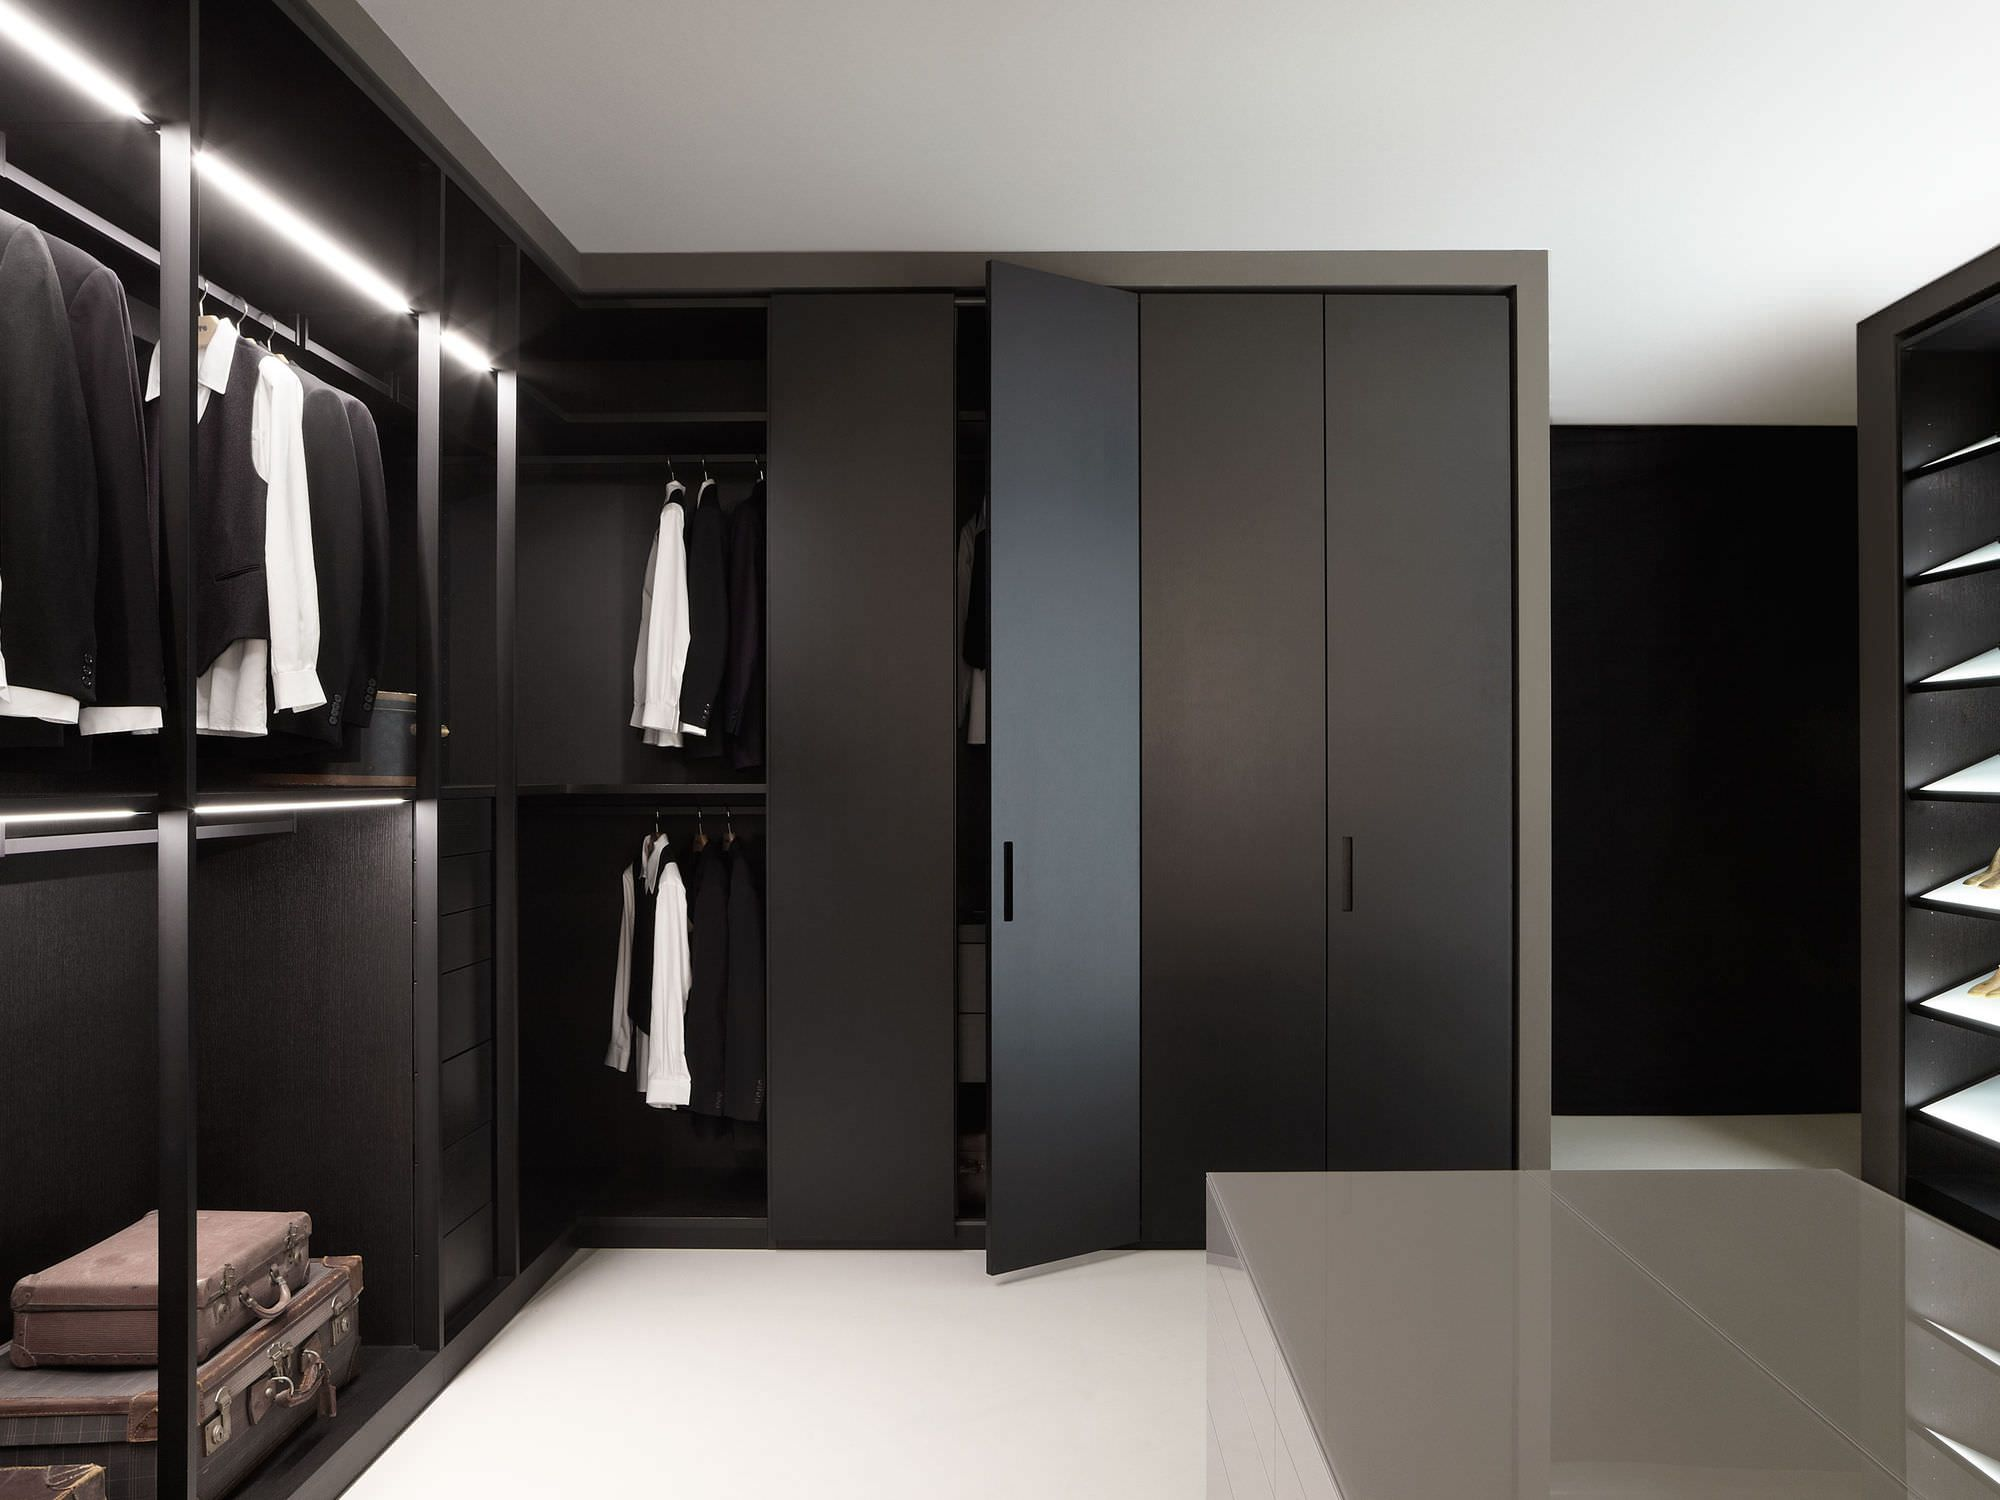 Minimalist Solid Black Enclosed Wardrobe Closet Design ...